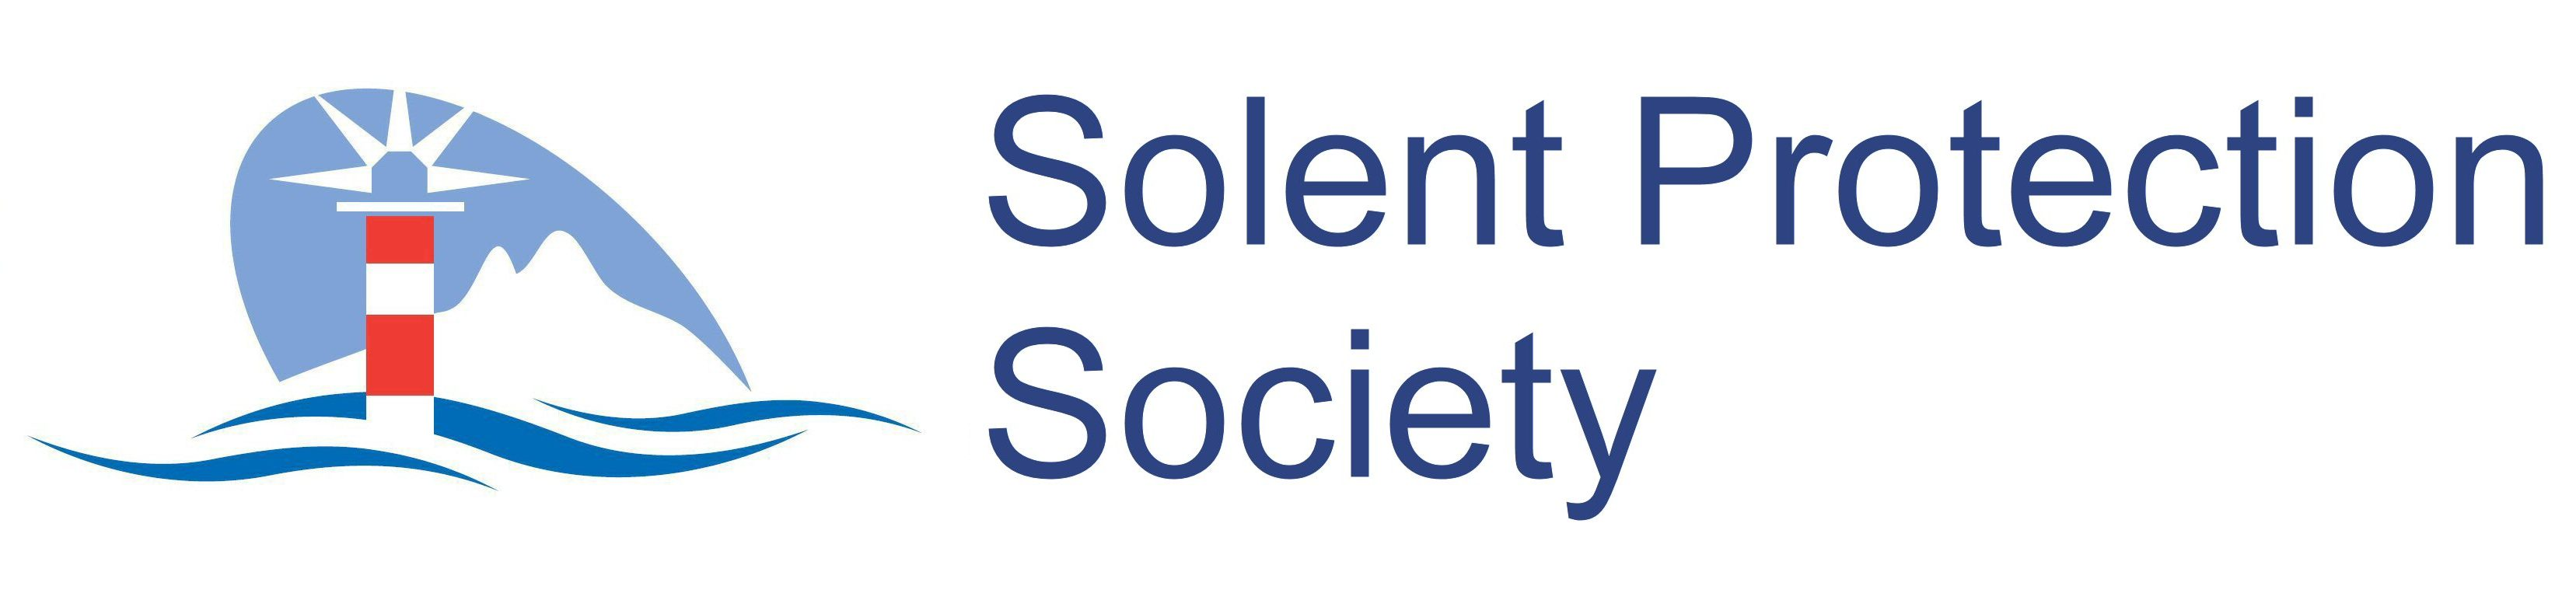 Solent Protection Society